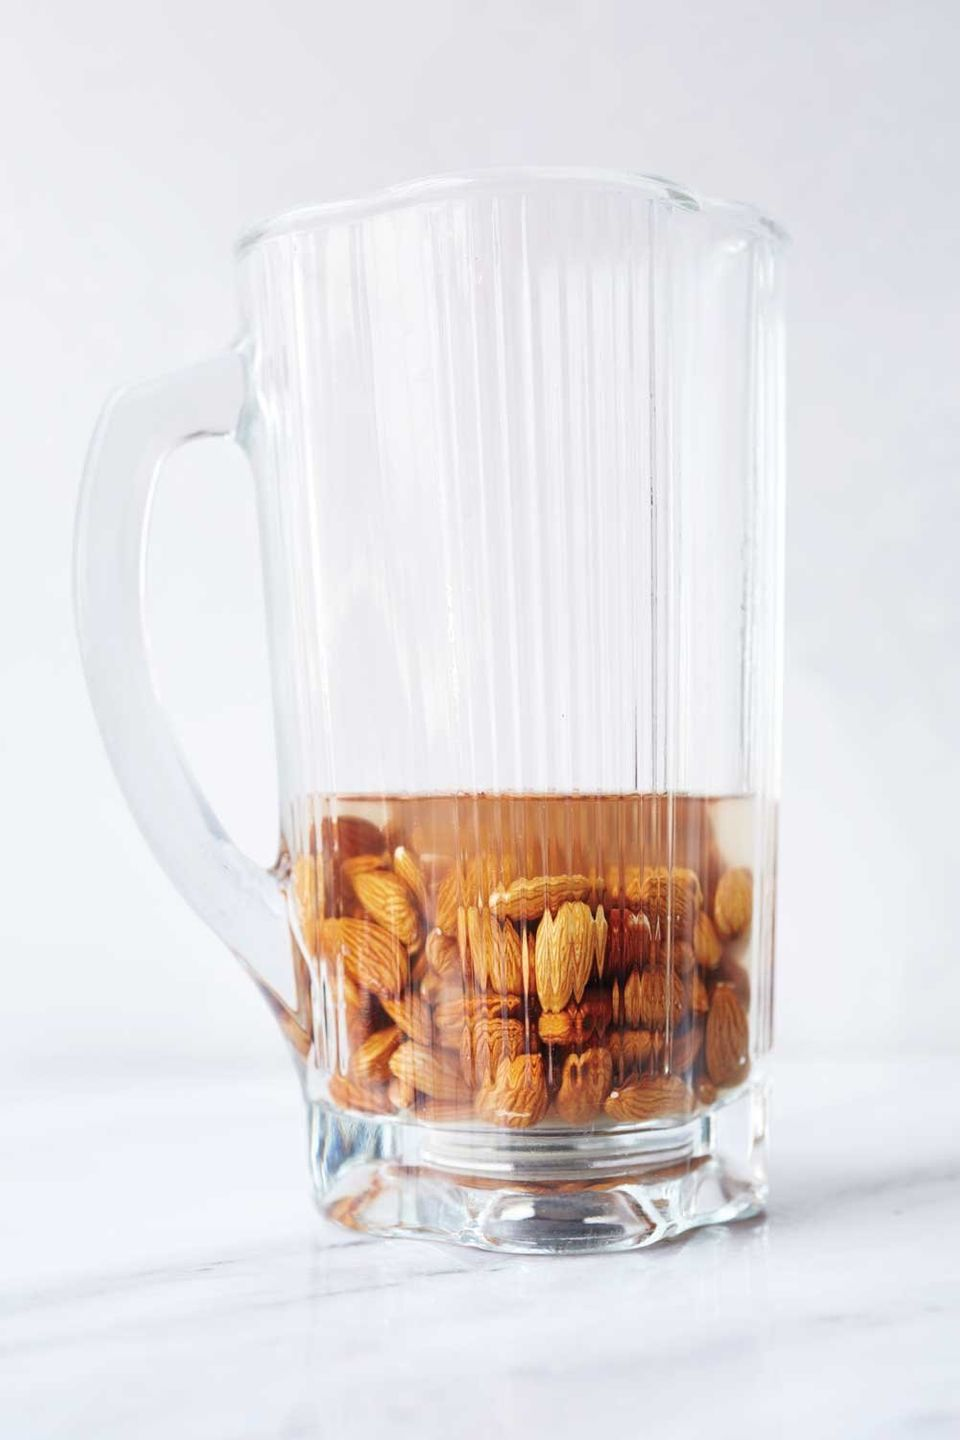 Place 1 cup whole raw nuts (almonds are shown, but you can also use cashews, pistachios, or hazelnuts) with an equal amount o